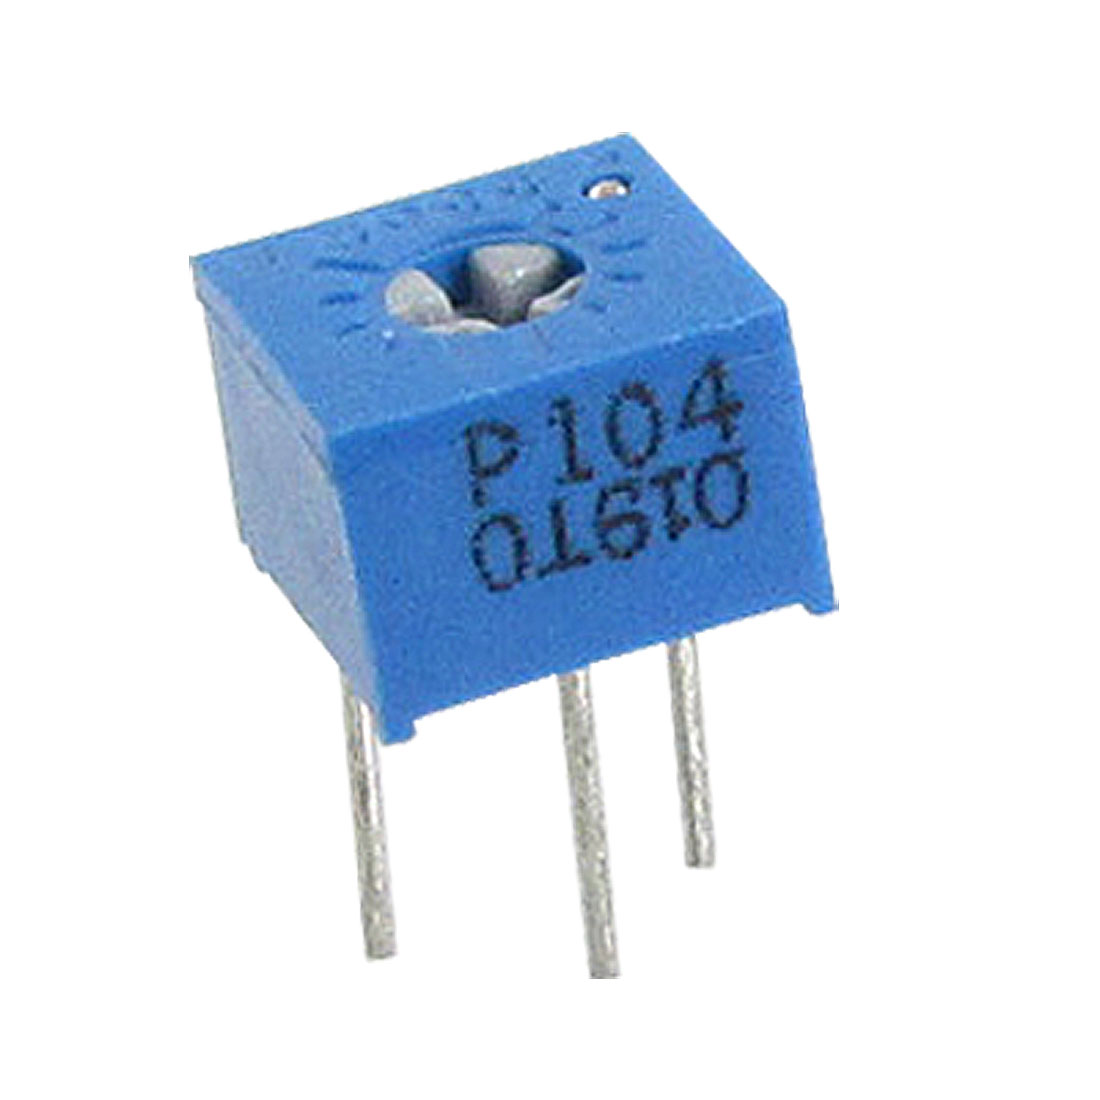 50 Pcs 3362P-1-104LF Cermet Trimmer Pot Potentiometer 100K Ohm